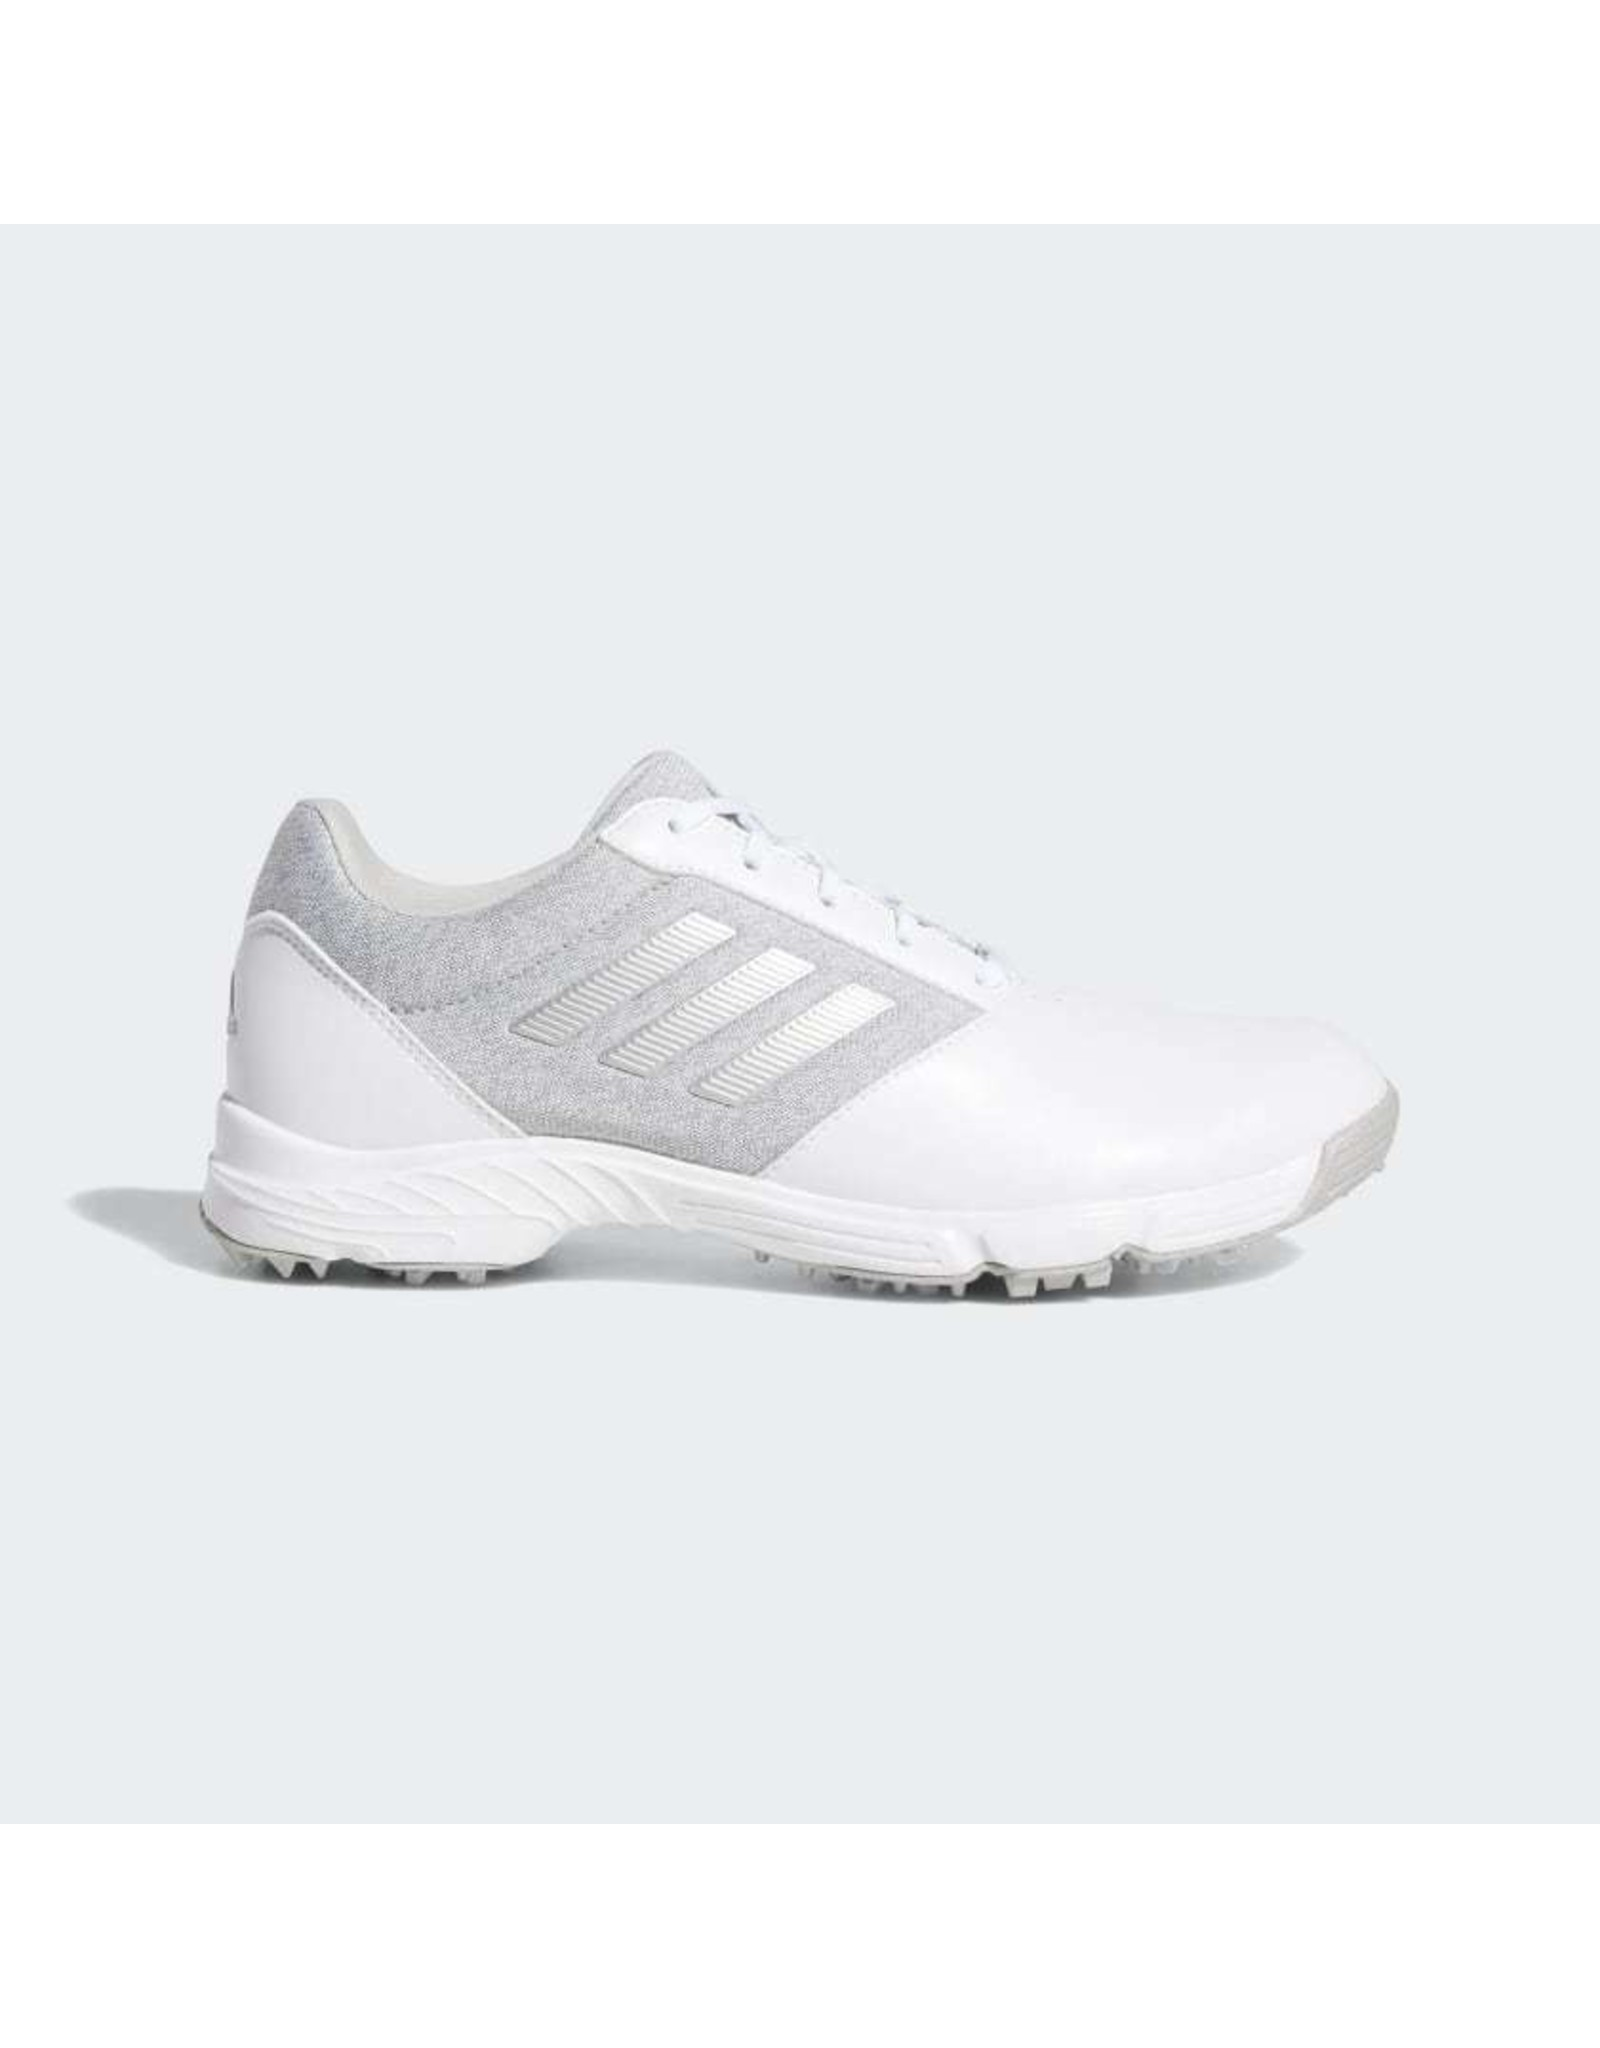 Adidas Adidas Women's Tech Response White/Grey